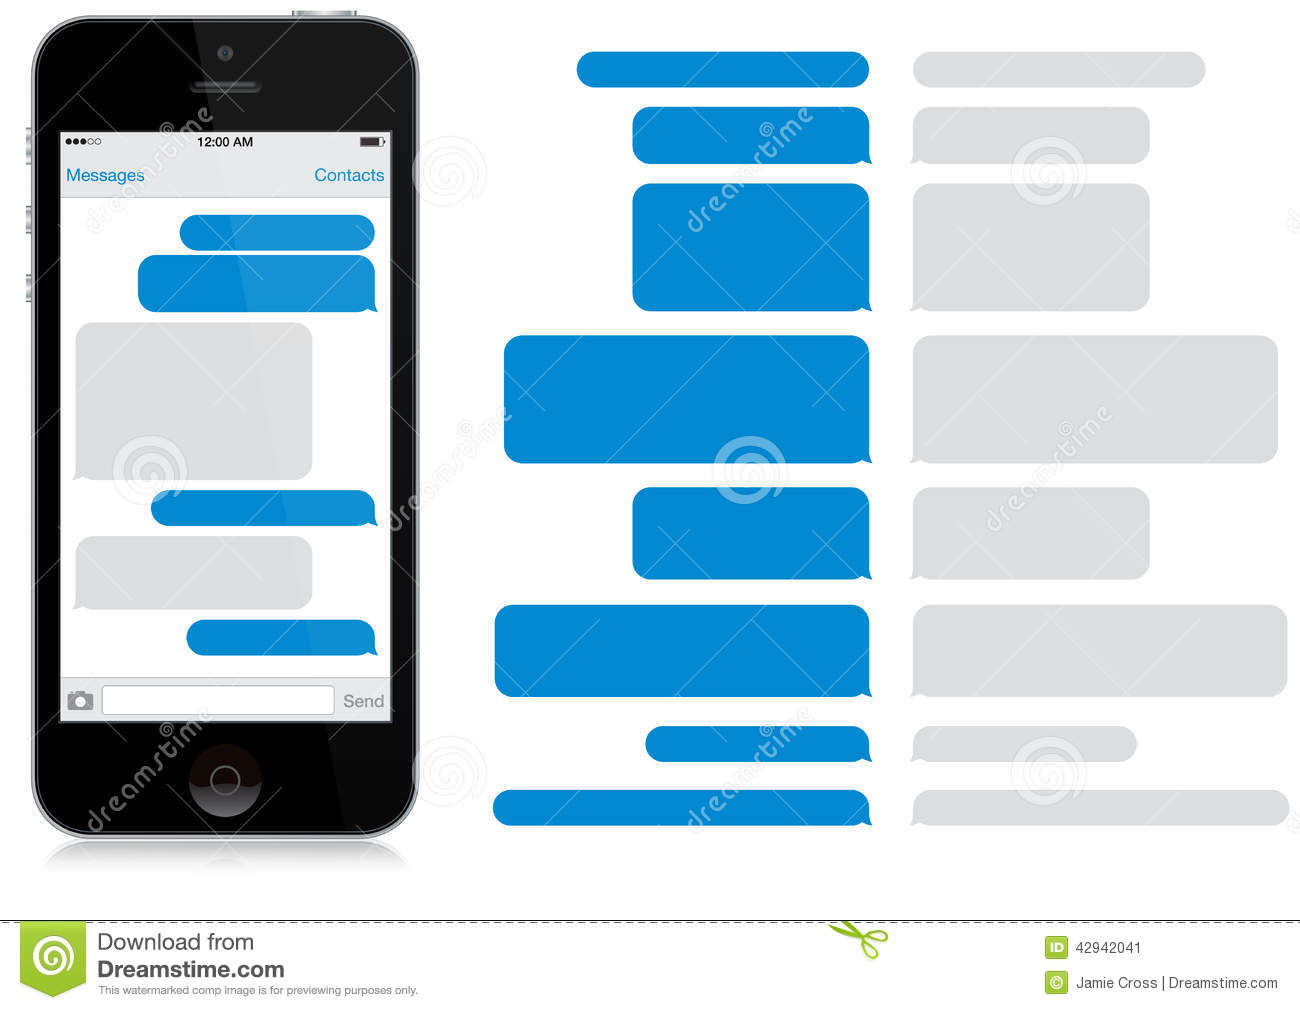 Iphone clipart iphone text. Free download best